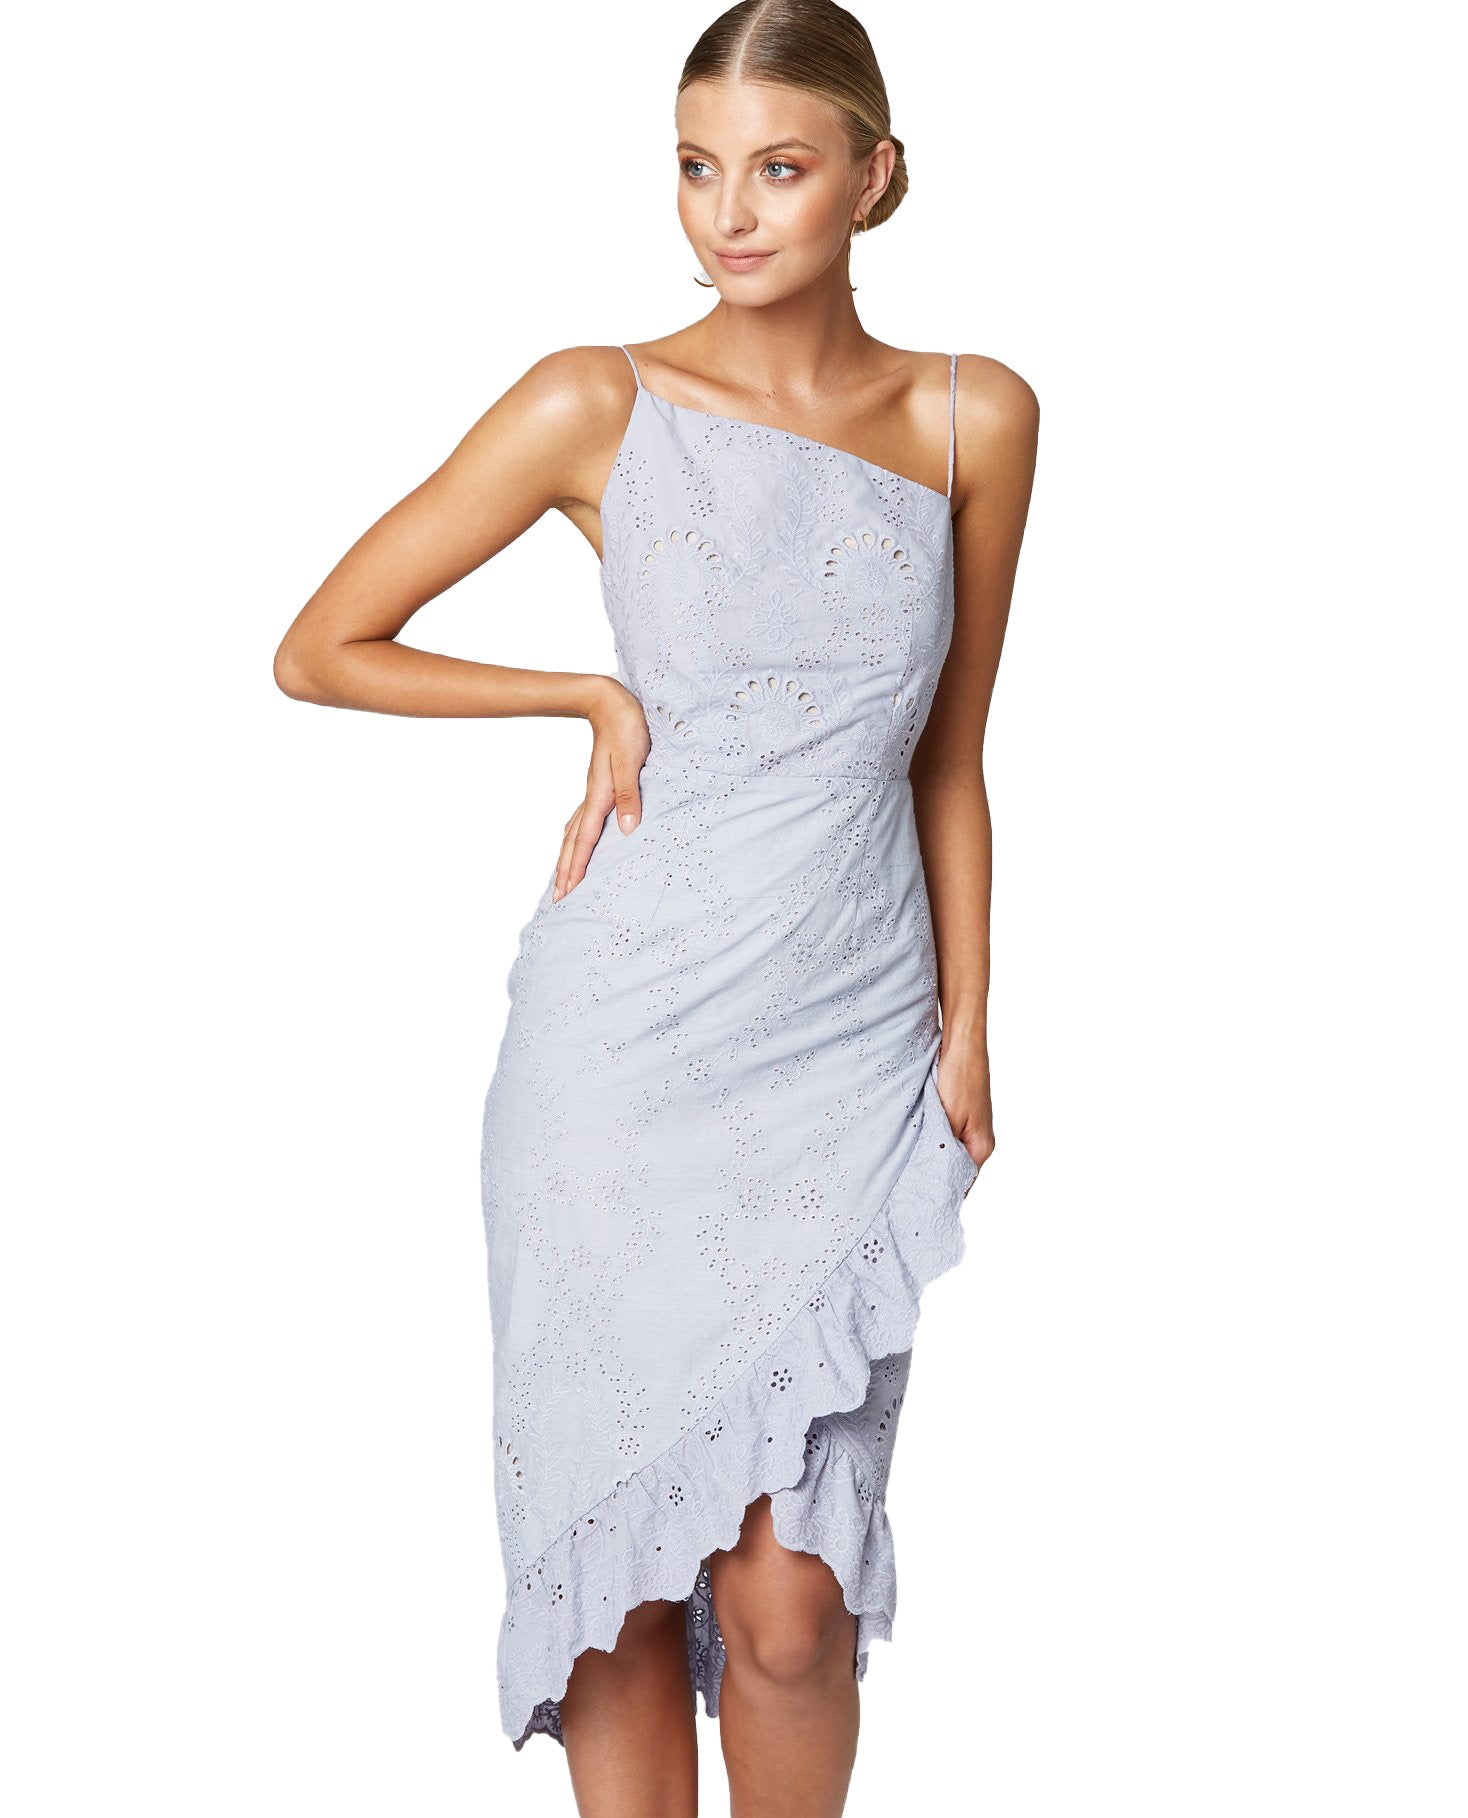 WINONA CHARISMA MIDI DRESS IN LILAC